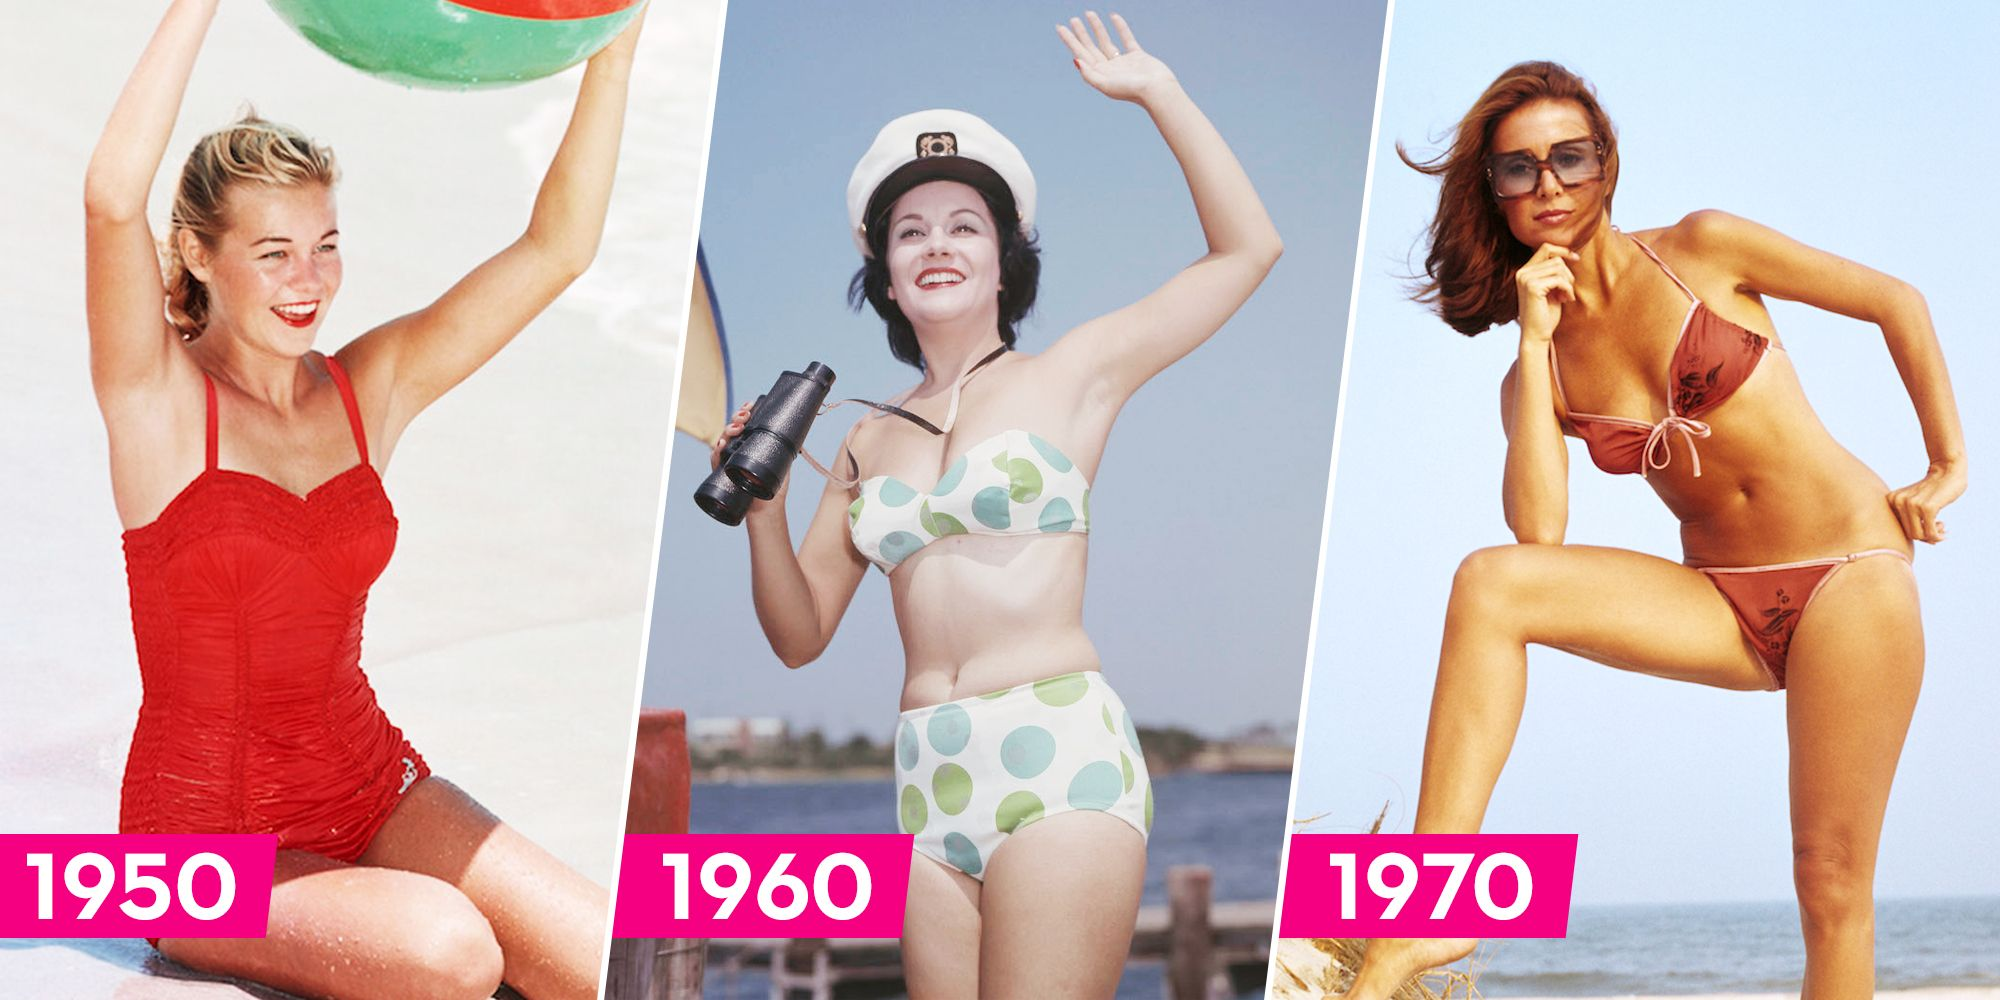 519b5634b8 The Best Retro Swimsuits Over the Years - Vintage Bathing Suit and ...